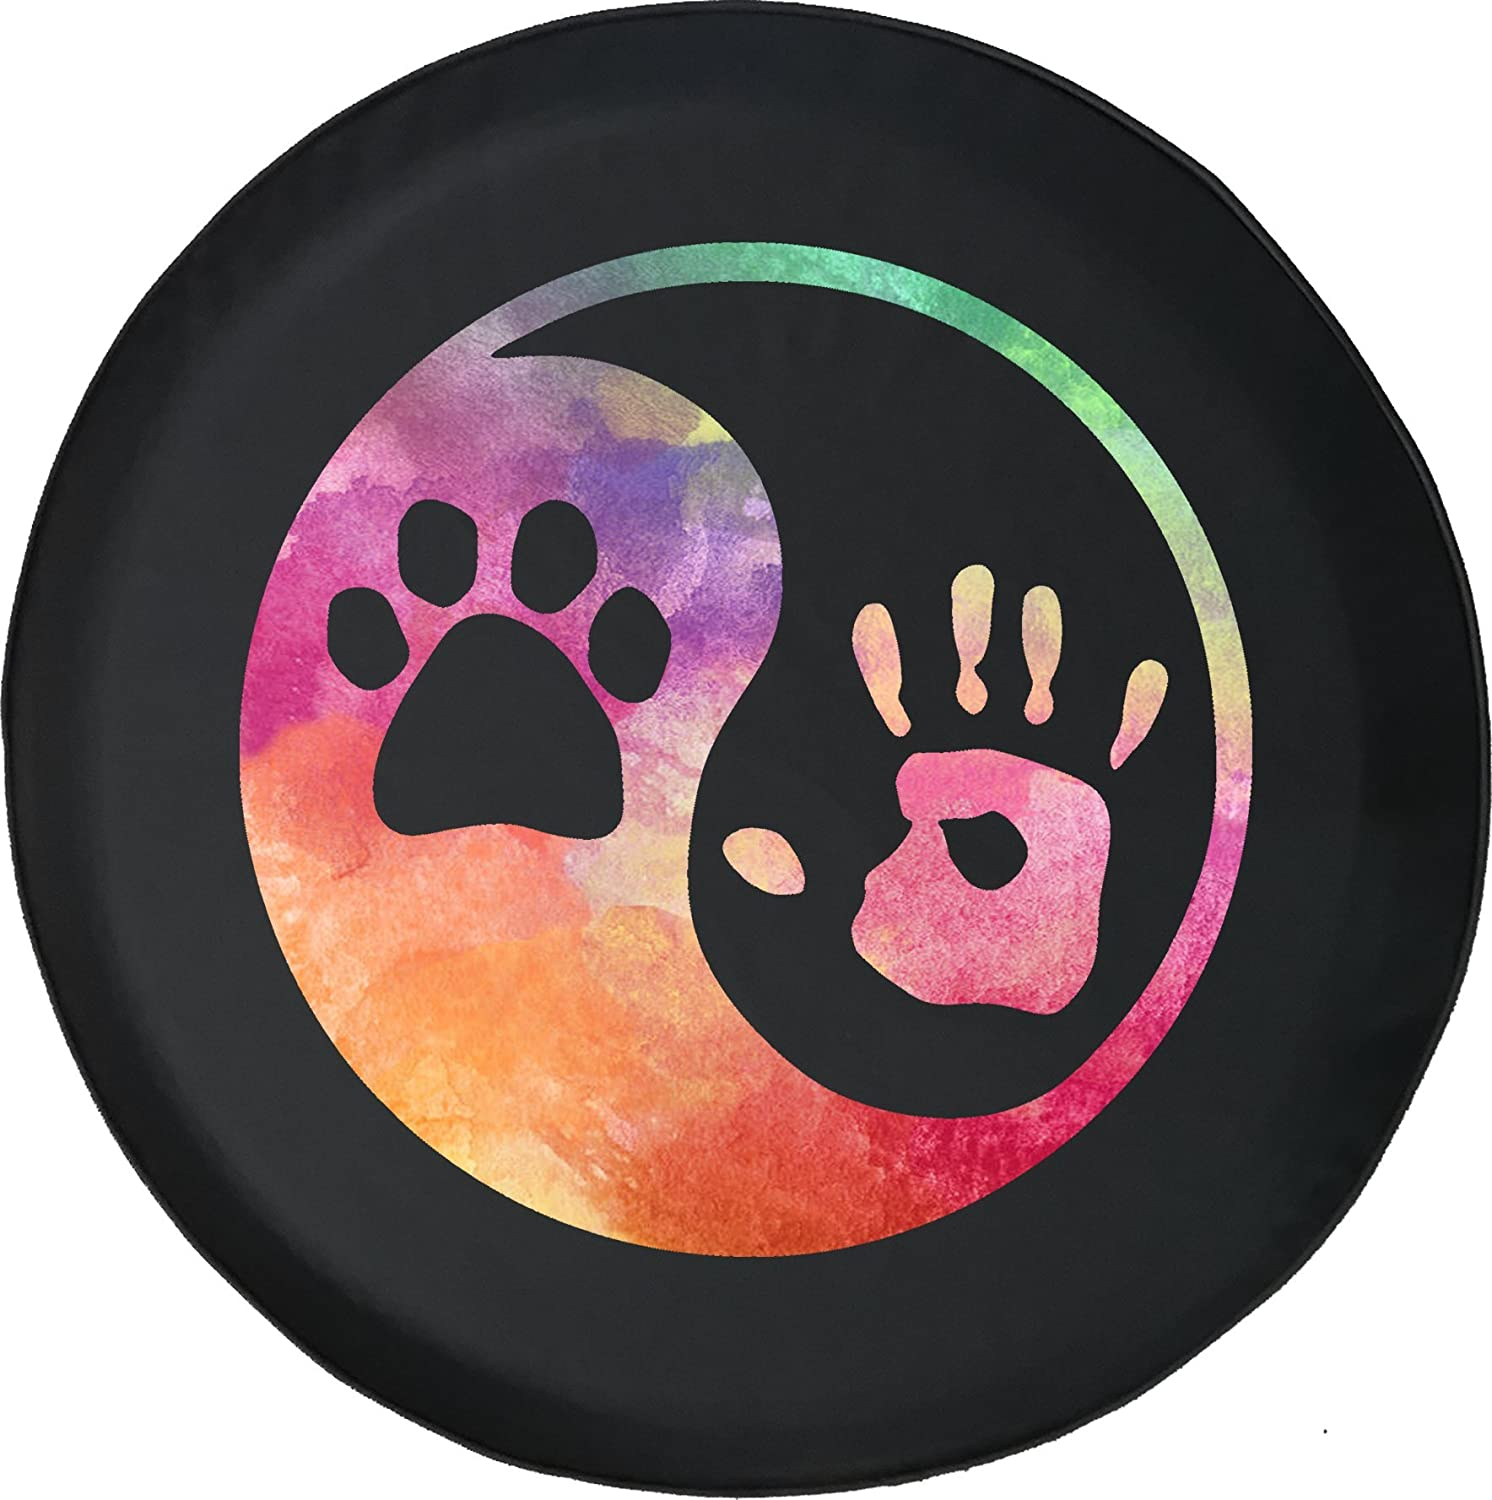 Jeep Girl Sandals Jeep RV Spare Tire Cover Black 32 in American Educational Products Watercolor